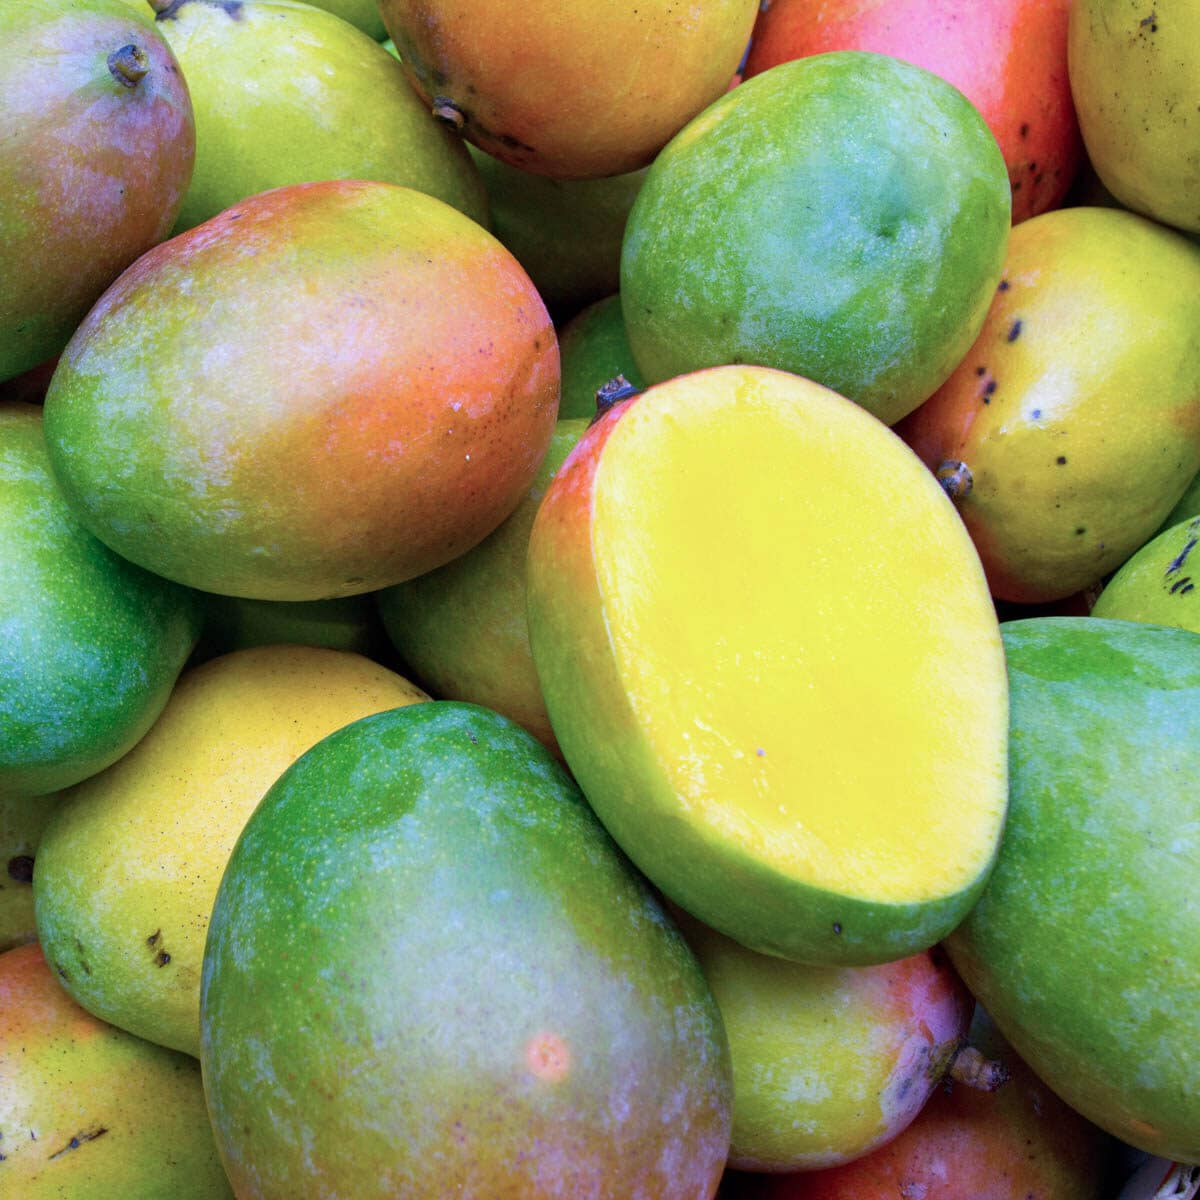 Group of mangos all together with one cut open in the front